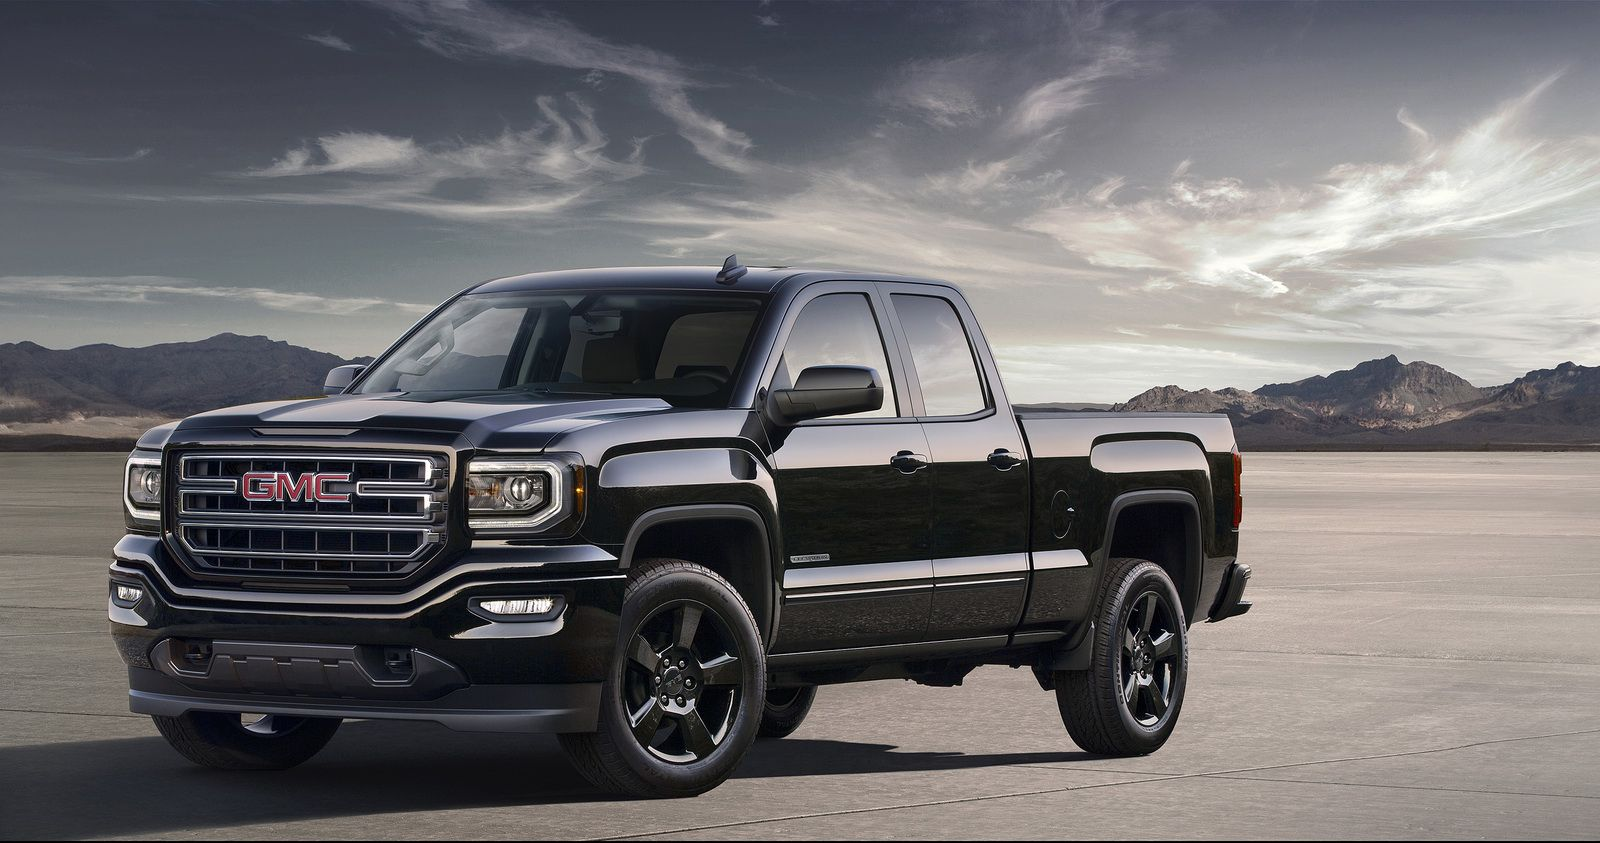 Gmc Sierra Elevation Edition Returns For 2016 2017 Gmc Sierra 1500